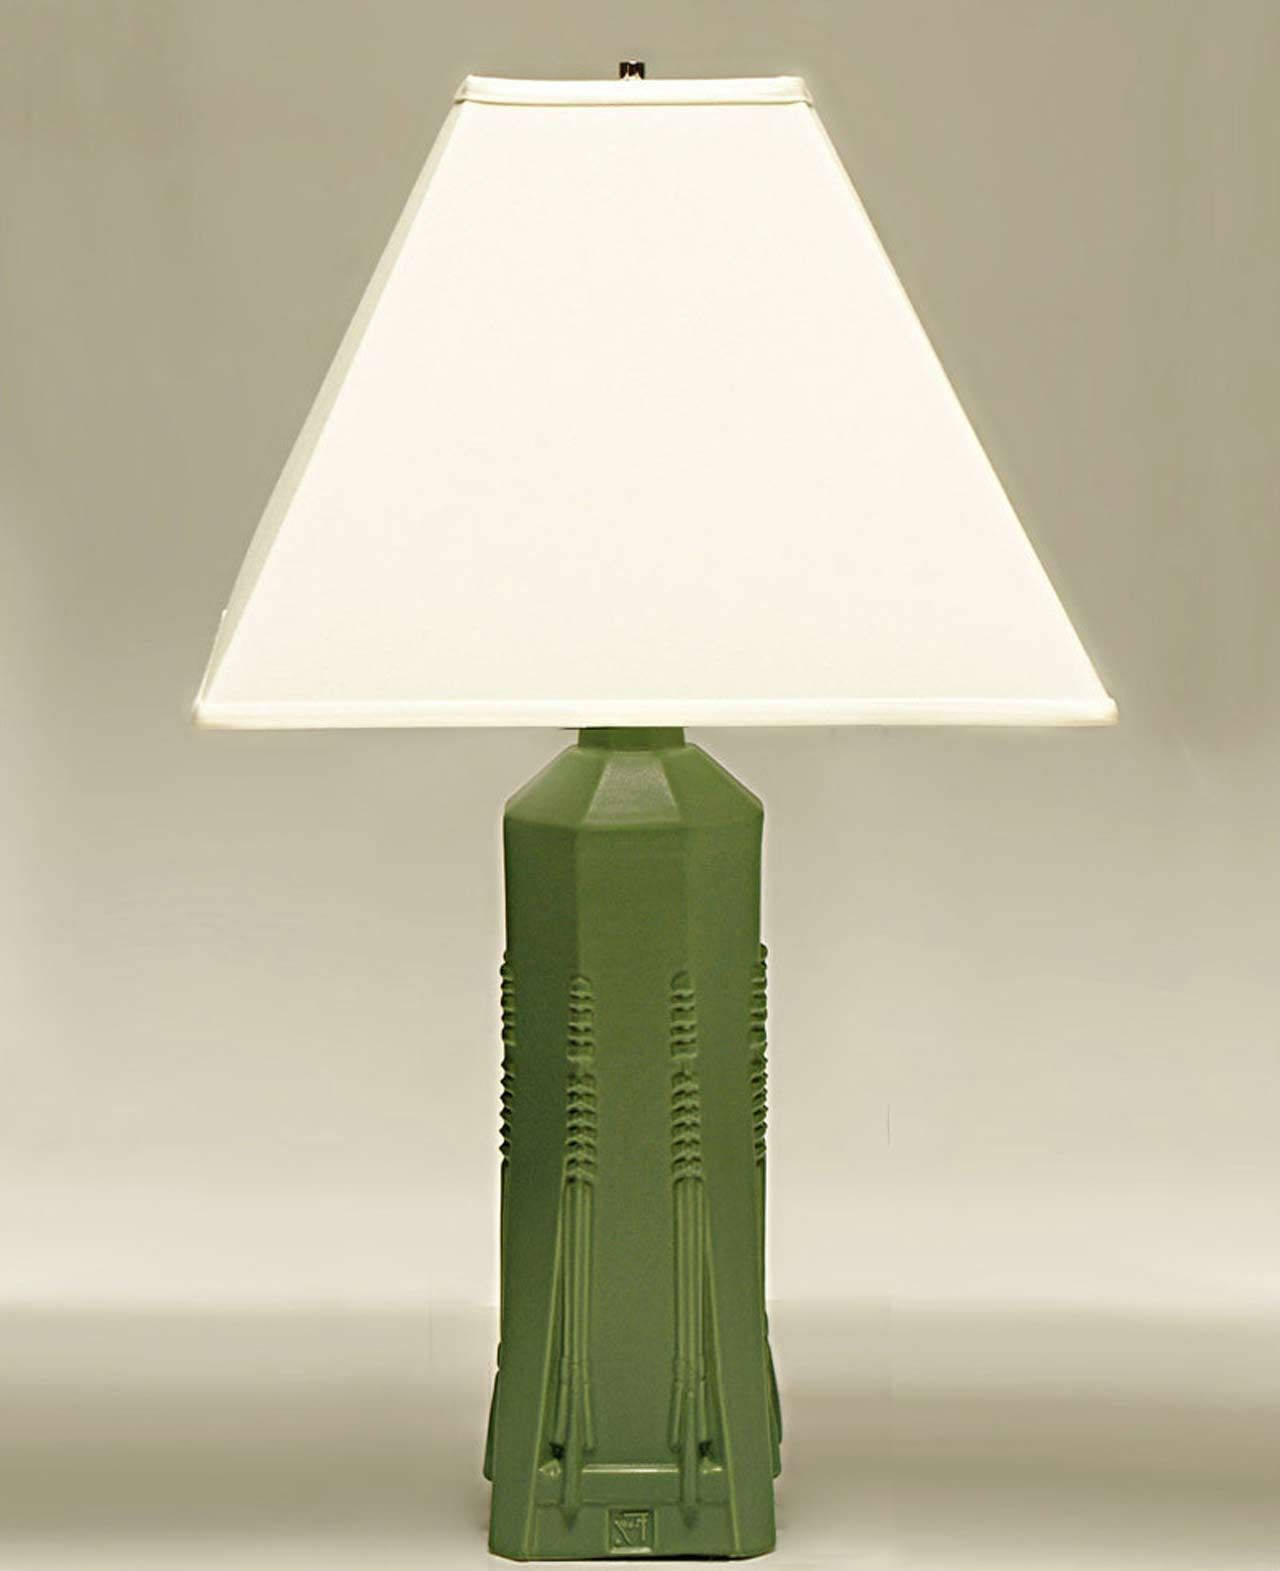 Simple battery operated table lamp design httplookmyhomes simple battery operated table lamp design httplookmyhomes geotapseo Choice Image